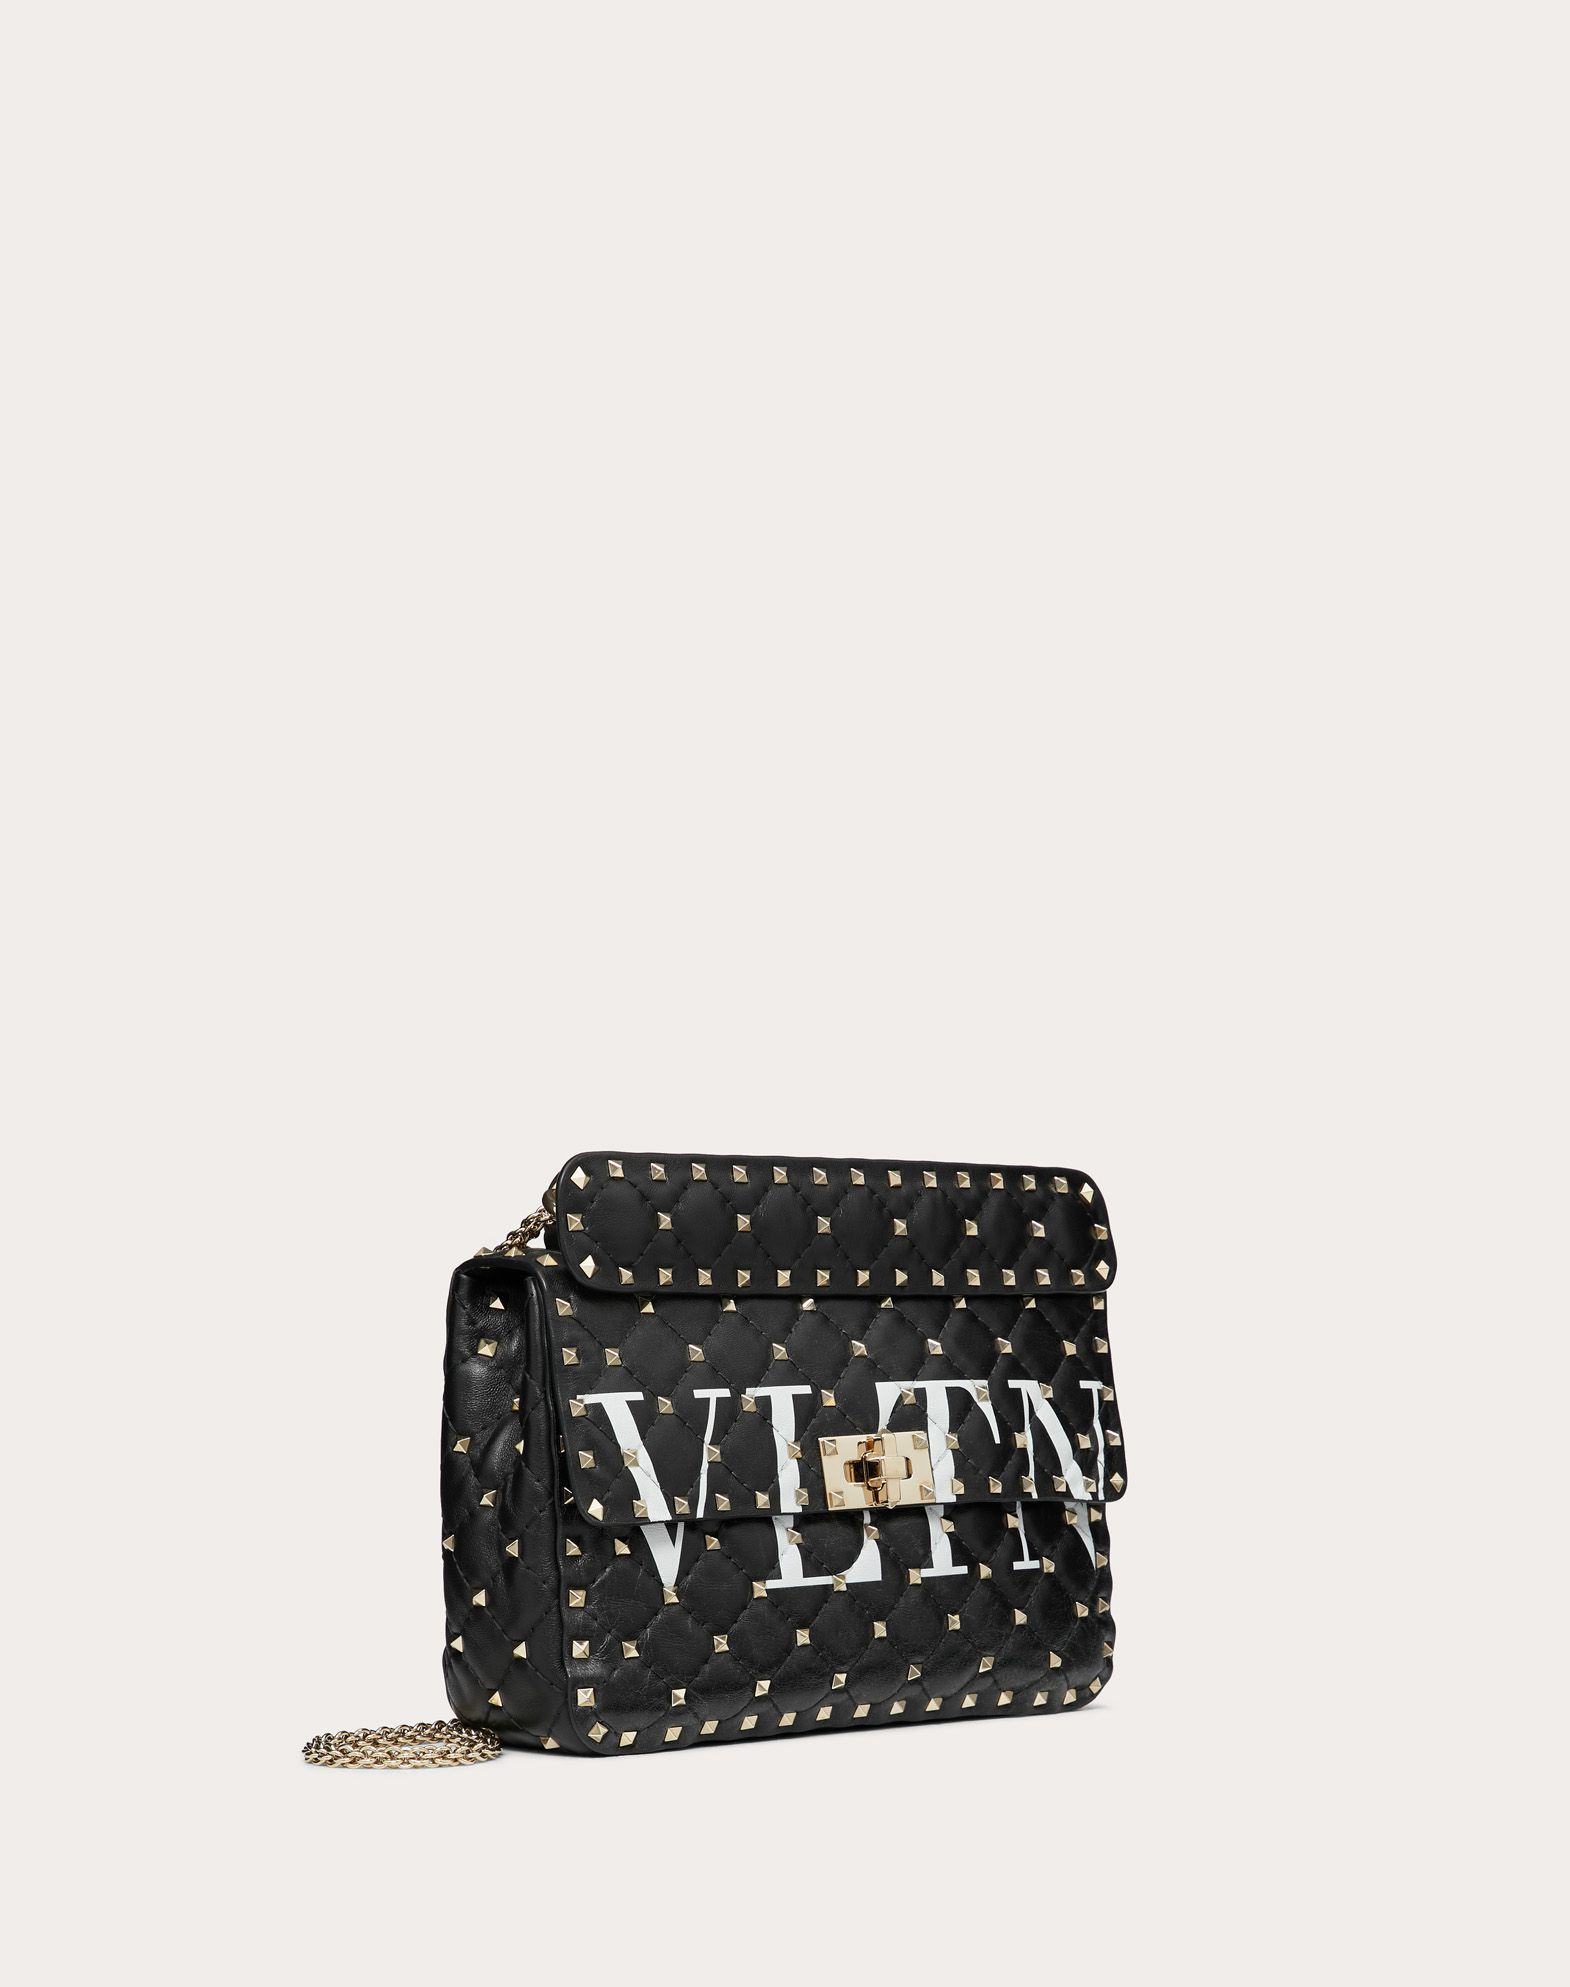 VALENTINO GARAVANI Rockstud Spike.It Medium Chain Bag Shoulder bag D r